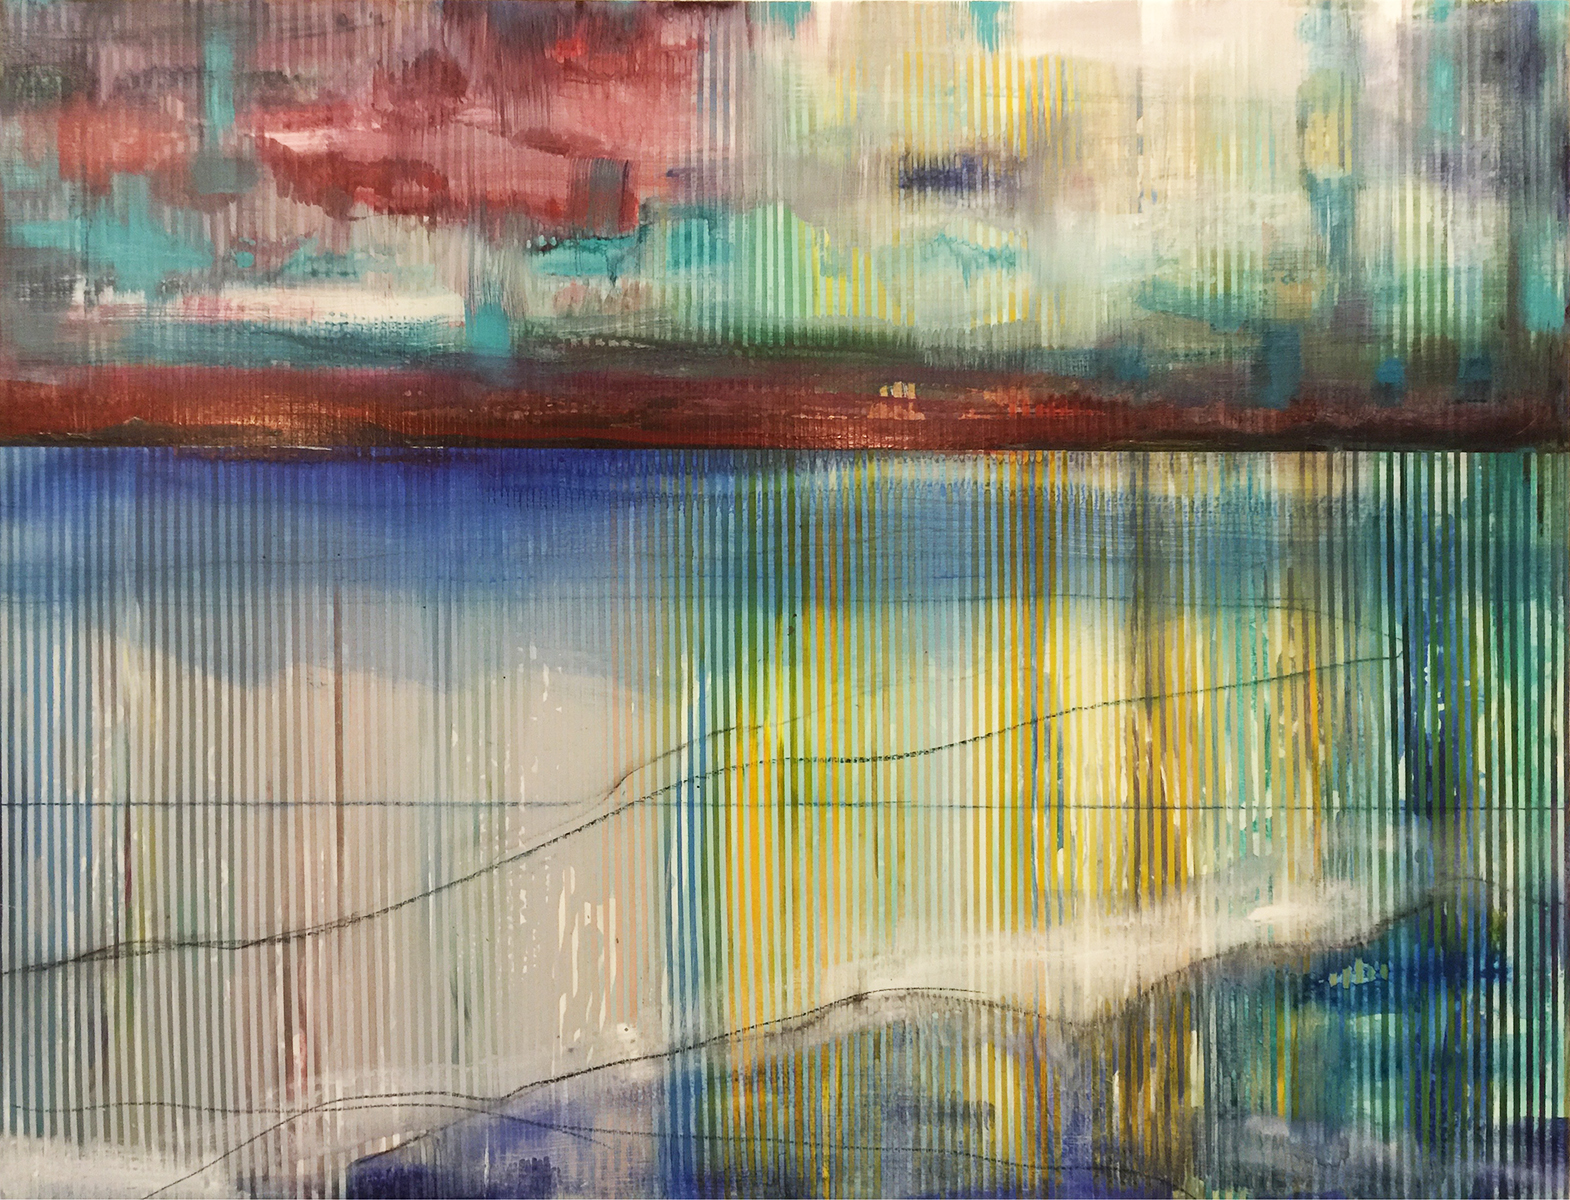 Landscape_Niagara Falls_72 x 48 inches_acrylic on panel_Shawn Skeir_2016